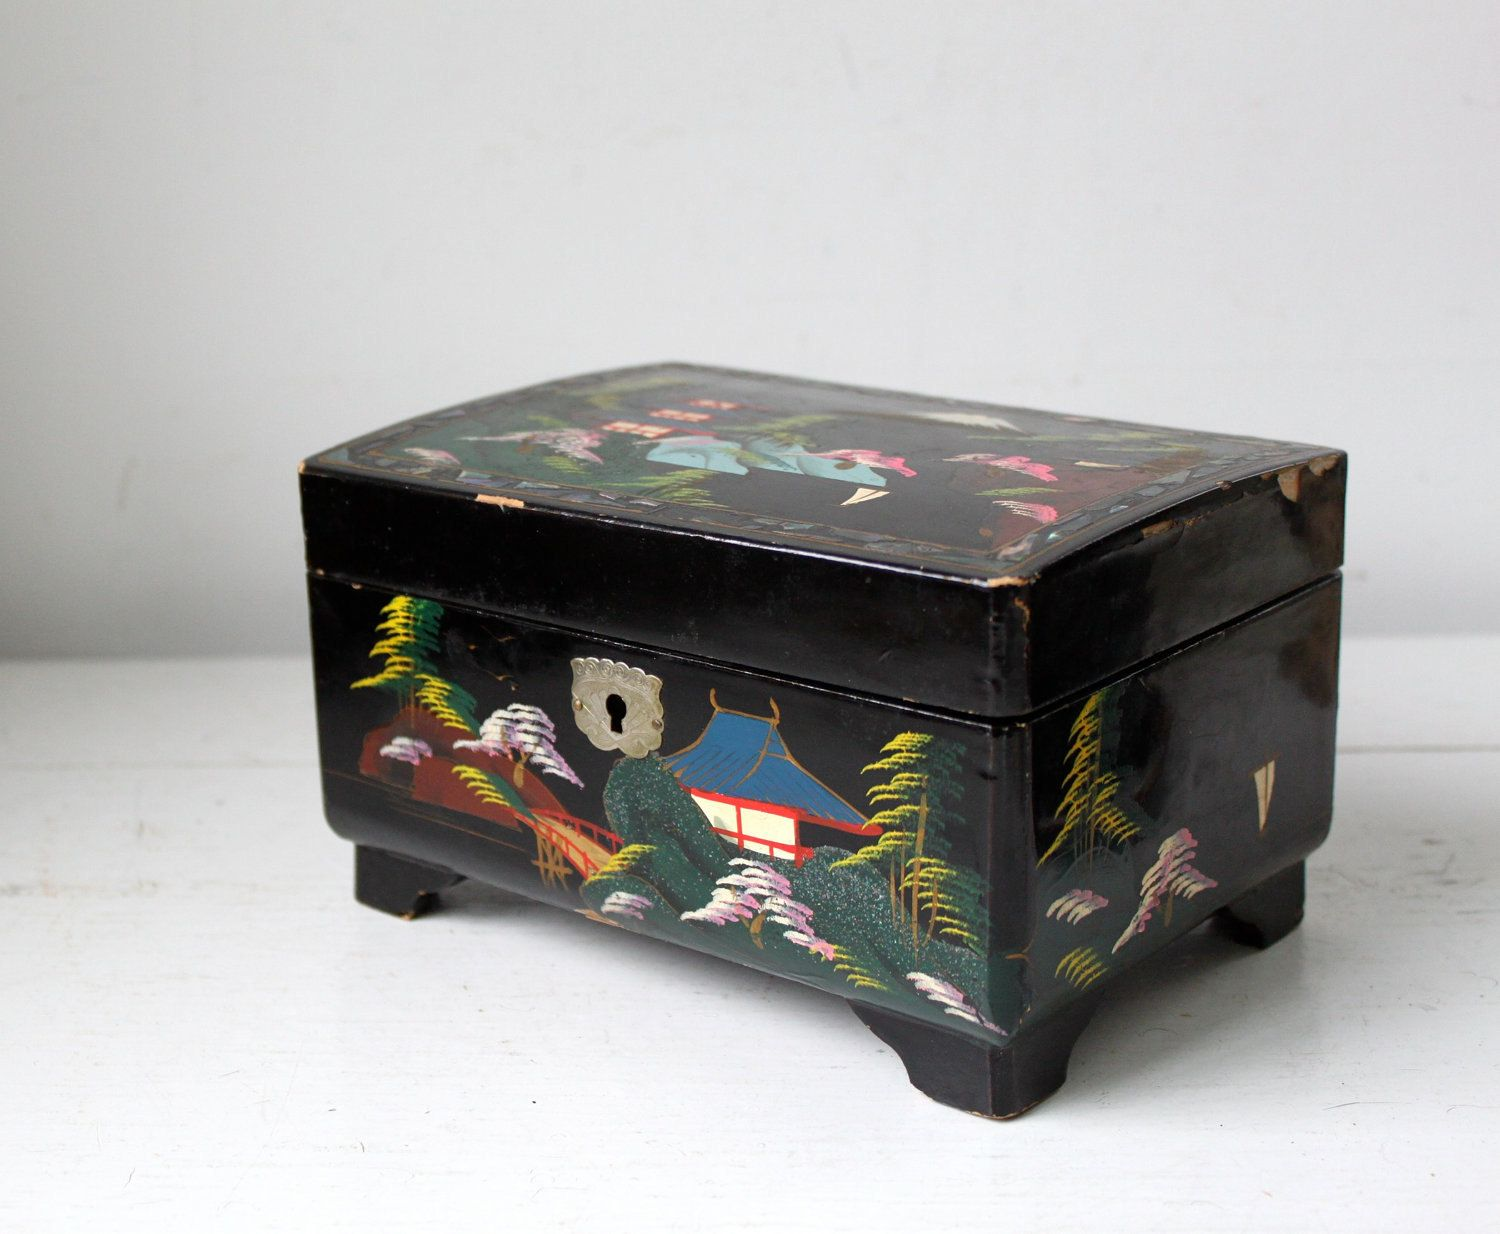 Vintage 1950s Musical Jewelry Box Handpainted On Black Lacquer With Mother Of Pearl Inlay From Japan Music Box Vintage Musical Jewelry Box Music Box Jewelry